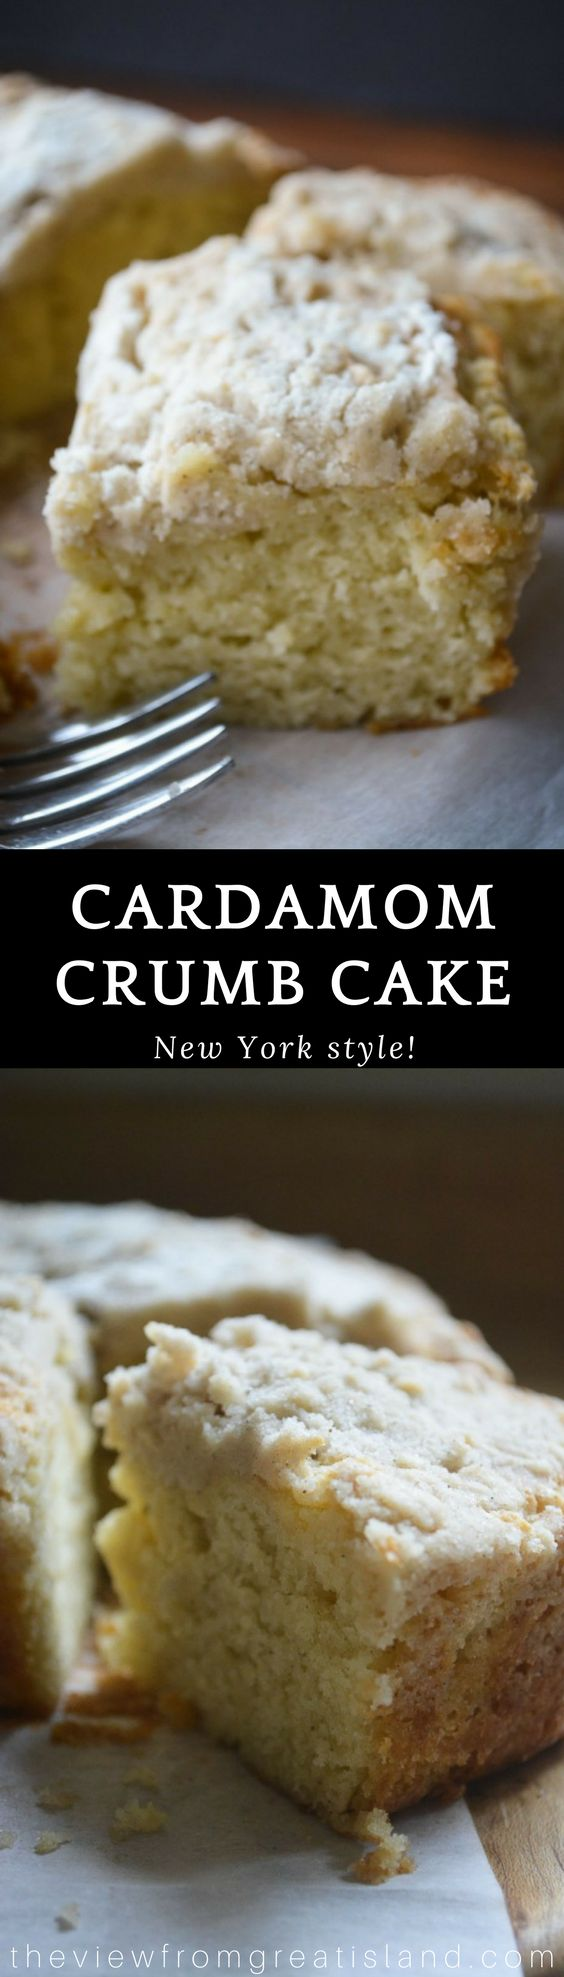 Cardamom Crumb Cake ~ this moist and pillowy New York style crumb cake takes coffee cake to a whole new level with the subtle warmth of cardamom! ~ 3C all purpose flour,  2C sugar,  1 Tbsp baking powder,  1/2 tsp salt,  1 Tbsp cardamom,  3/4C unsalted butter (12 Tbsp),  2/3C milk,  2 large eggs,  1/3C sour cream or plain Greek yogurt,  1 tsp vanilla extract